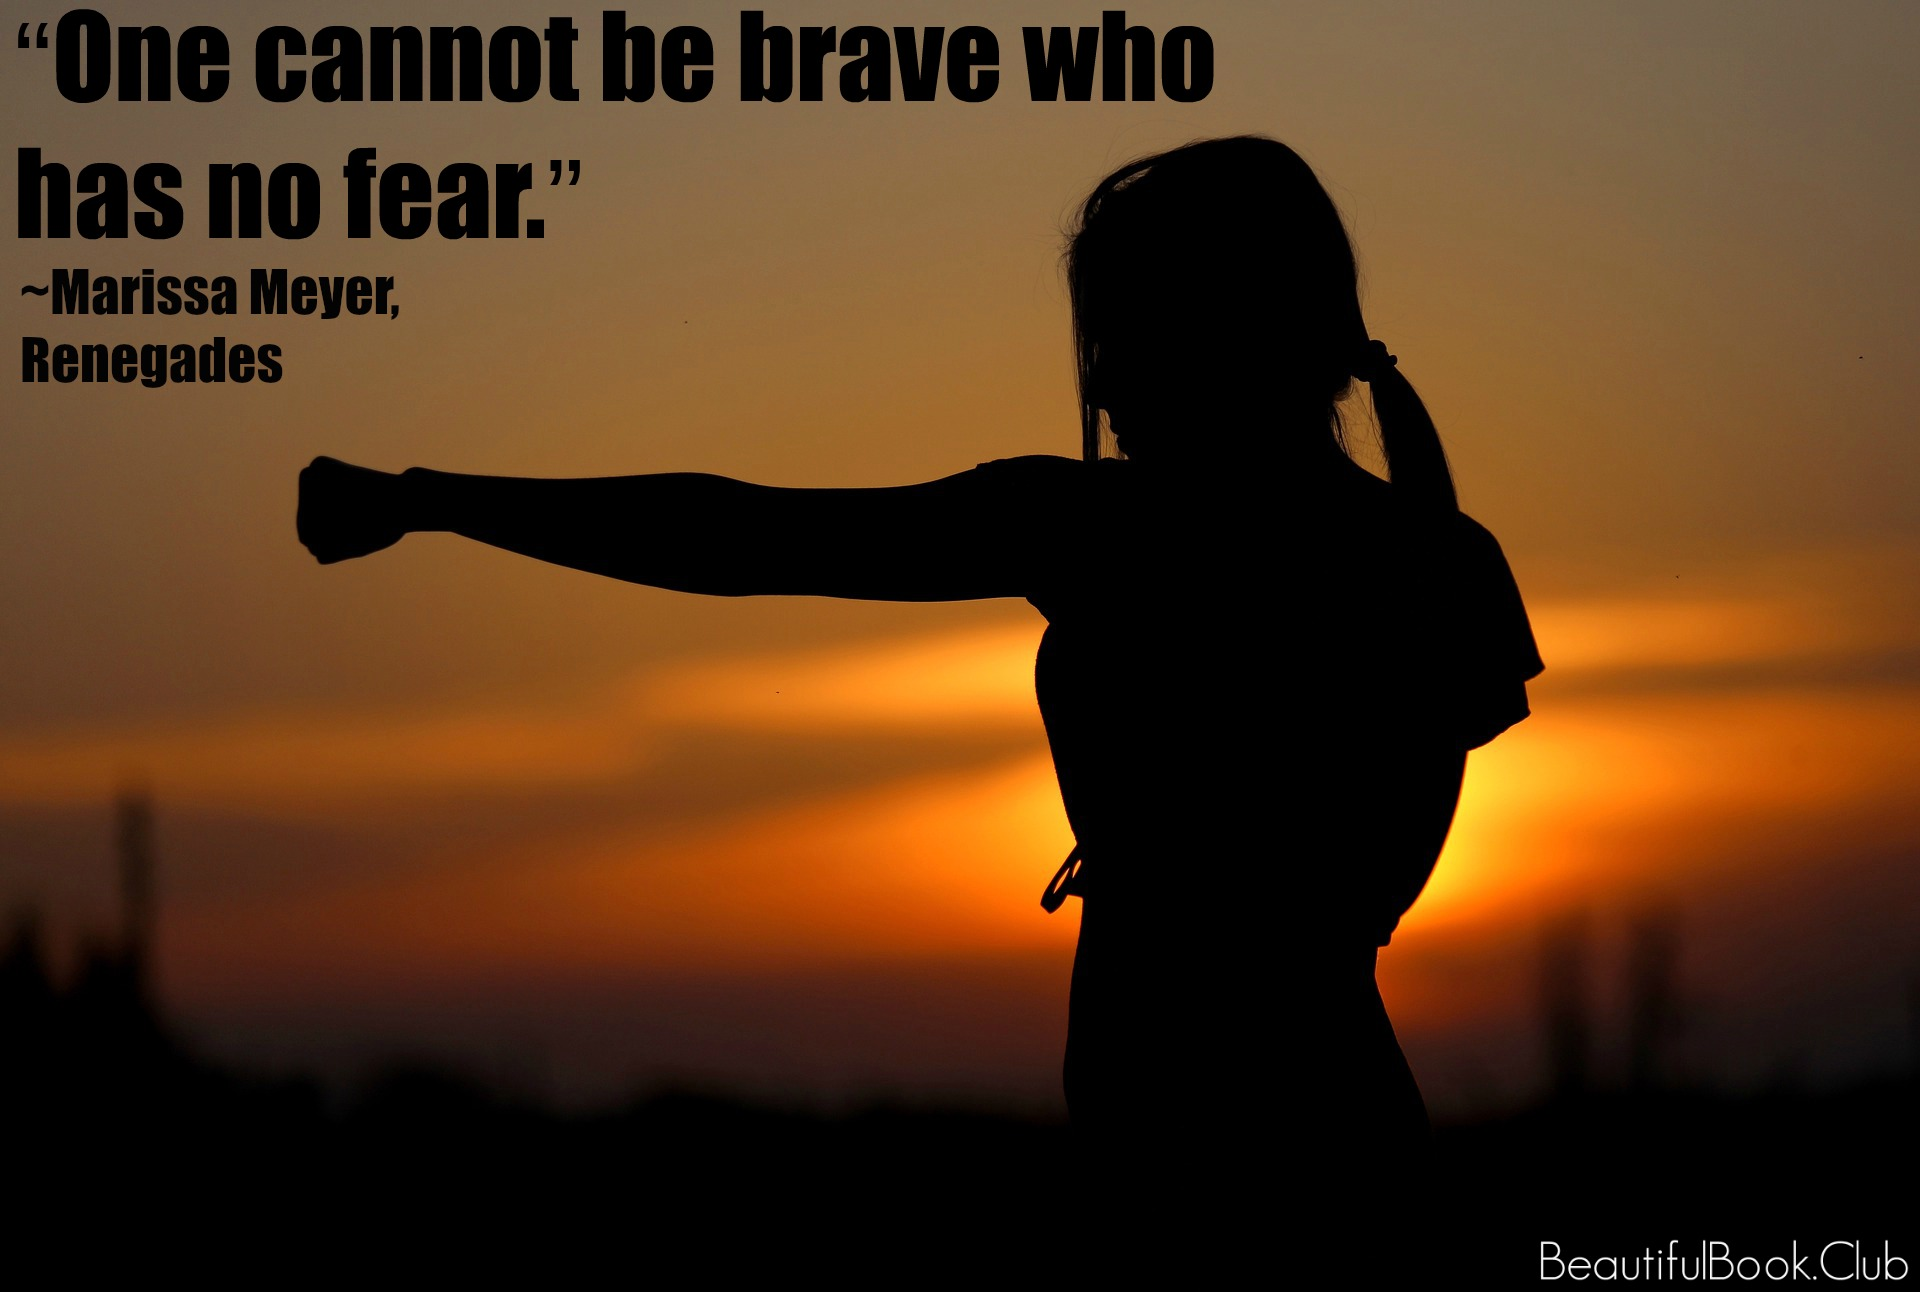 One cannot be brave who has no fear. _Marissa Meyer, Renegades